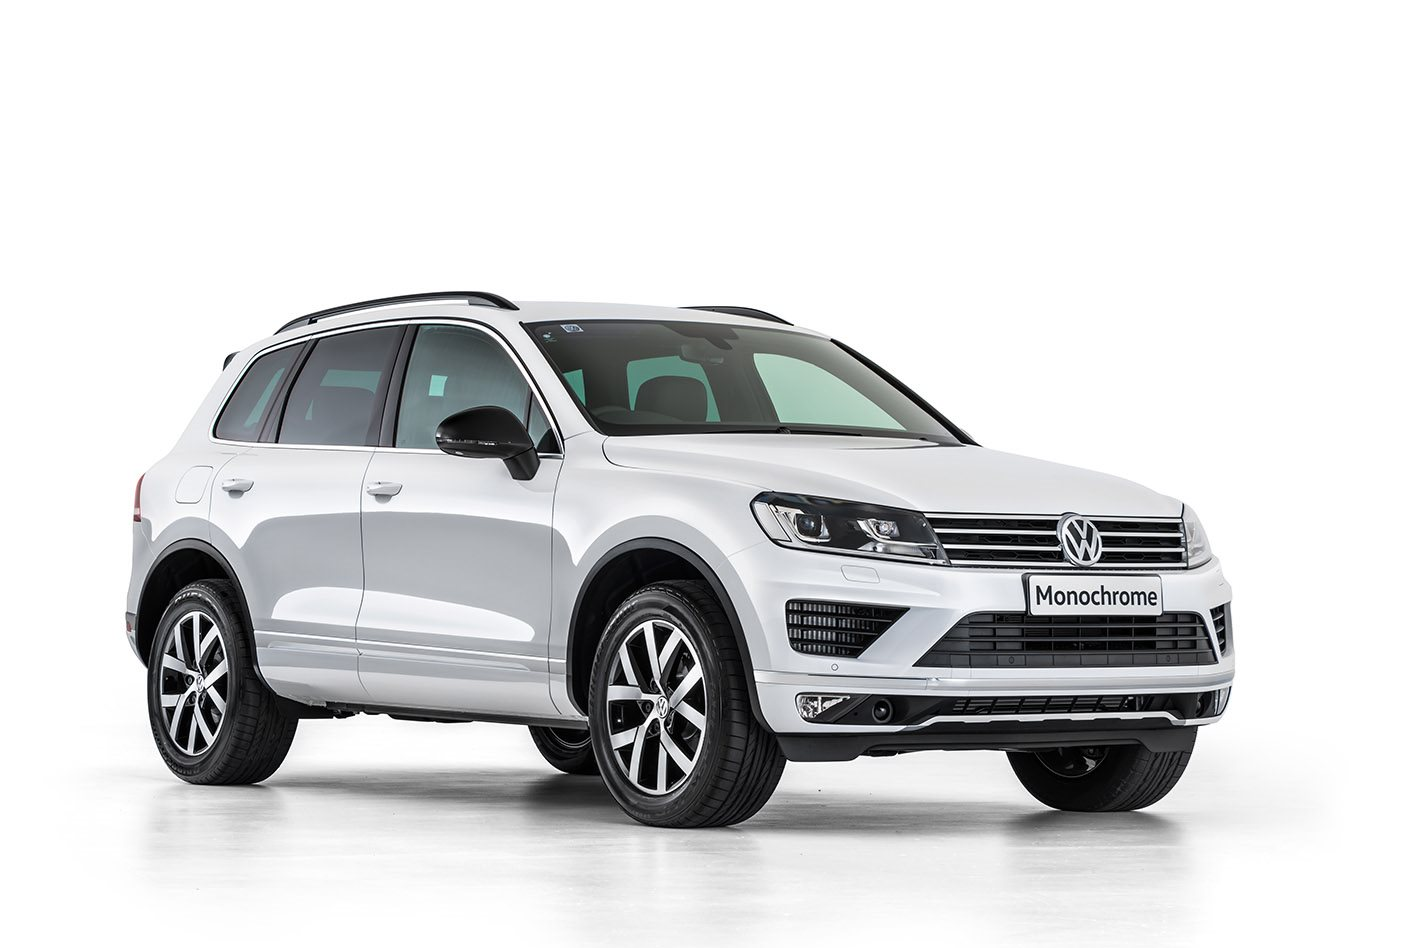 2017 volkswagen touareg monochrome revealed. Black Bedroom Furniture Sets. Home Design Ideas